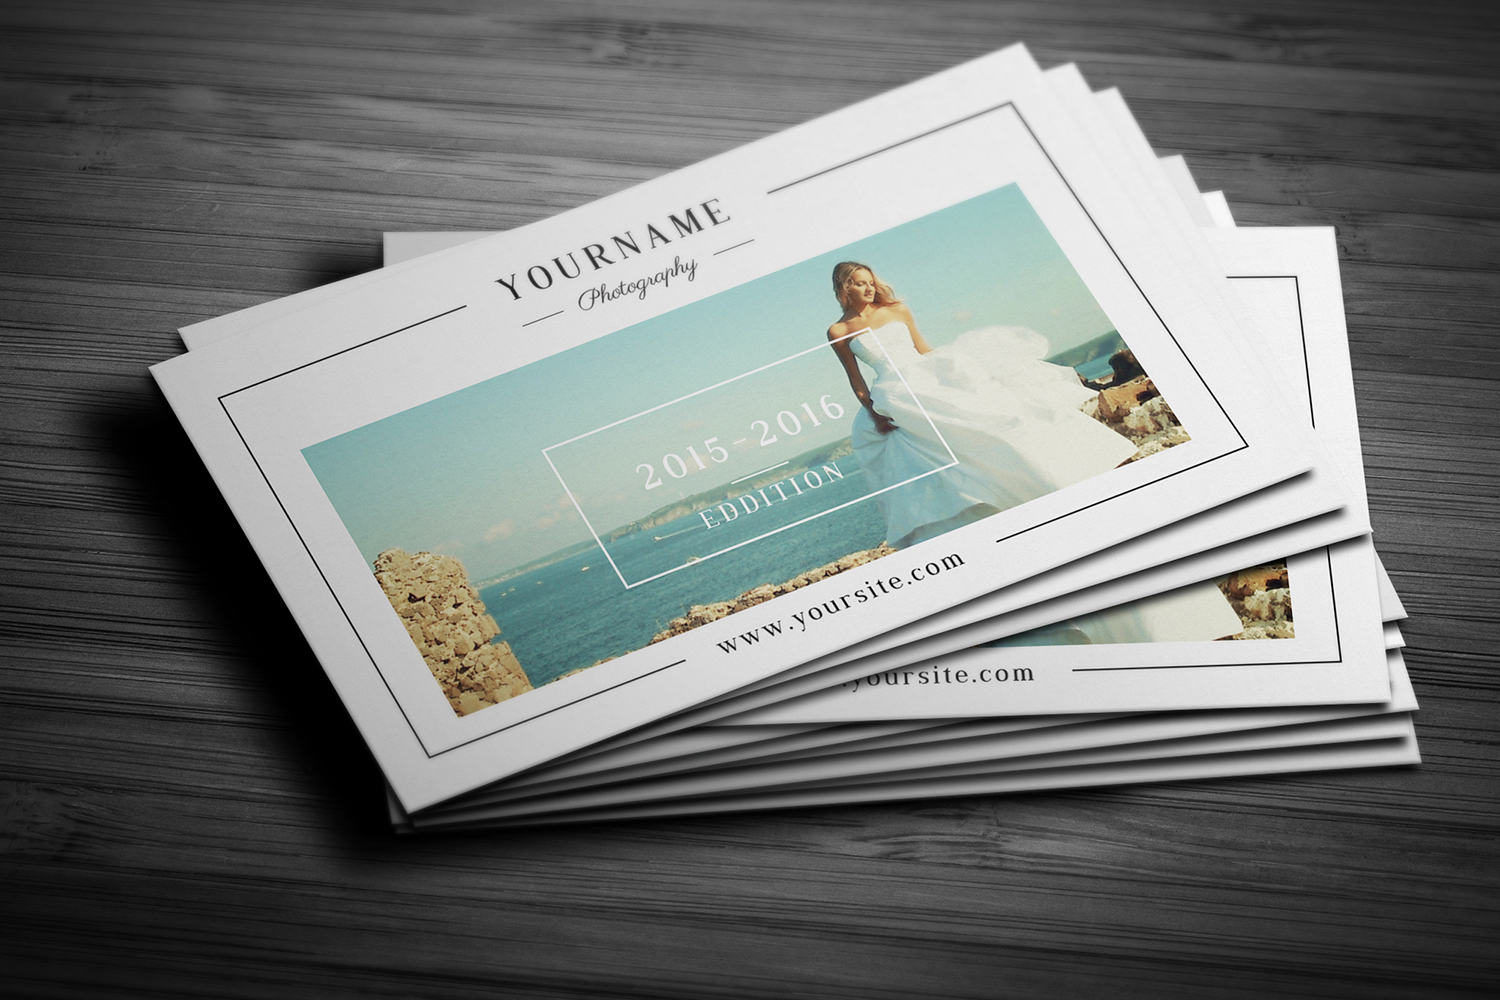 Minimal Wedding Photography Business Card  example image 2